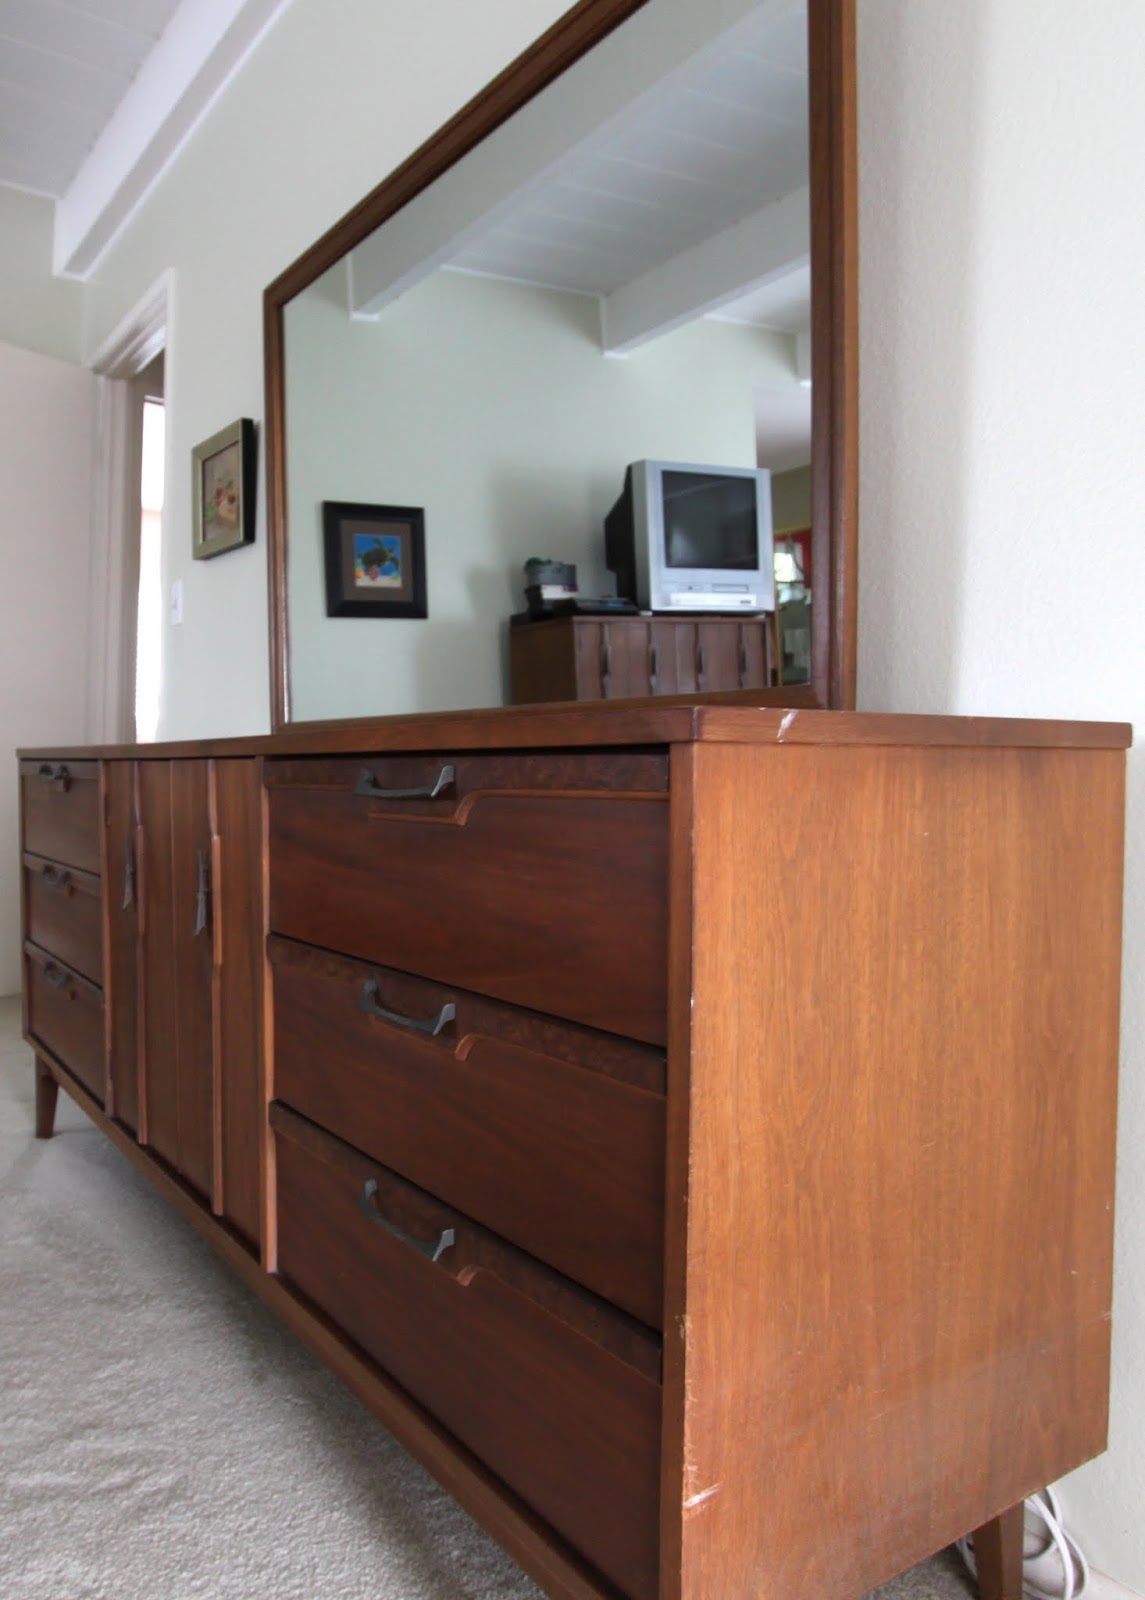 lenoir house bedroom furniture  broyhills second cousin  midcentury modern remodel